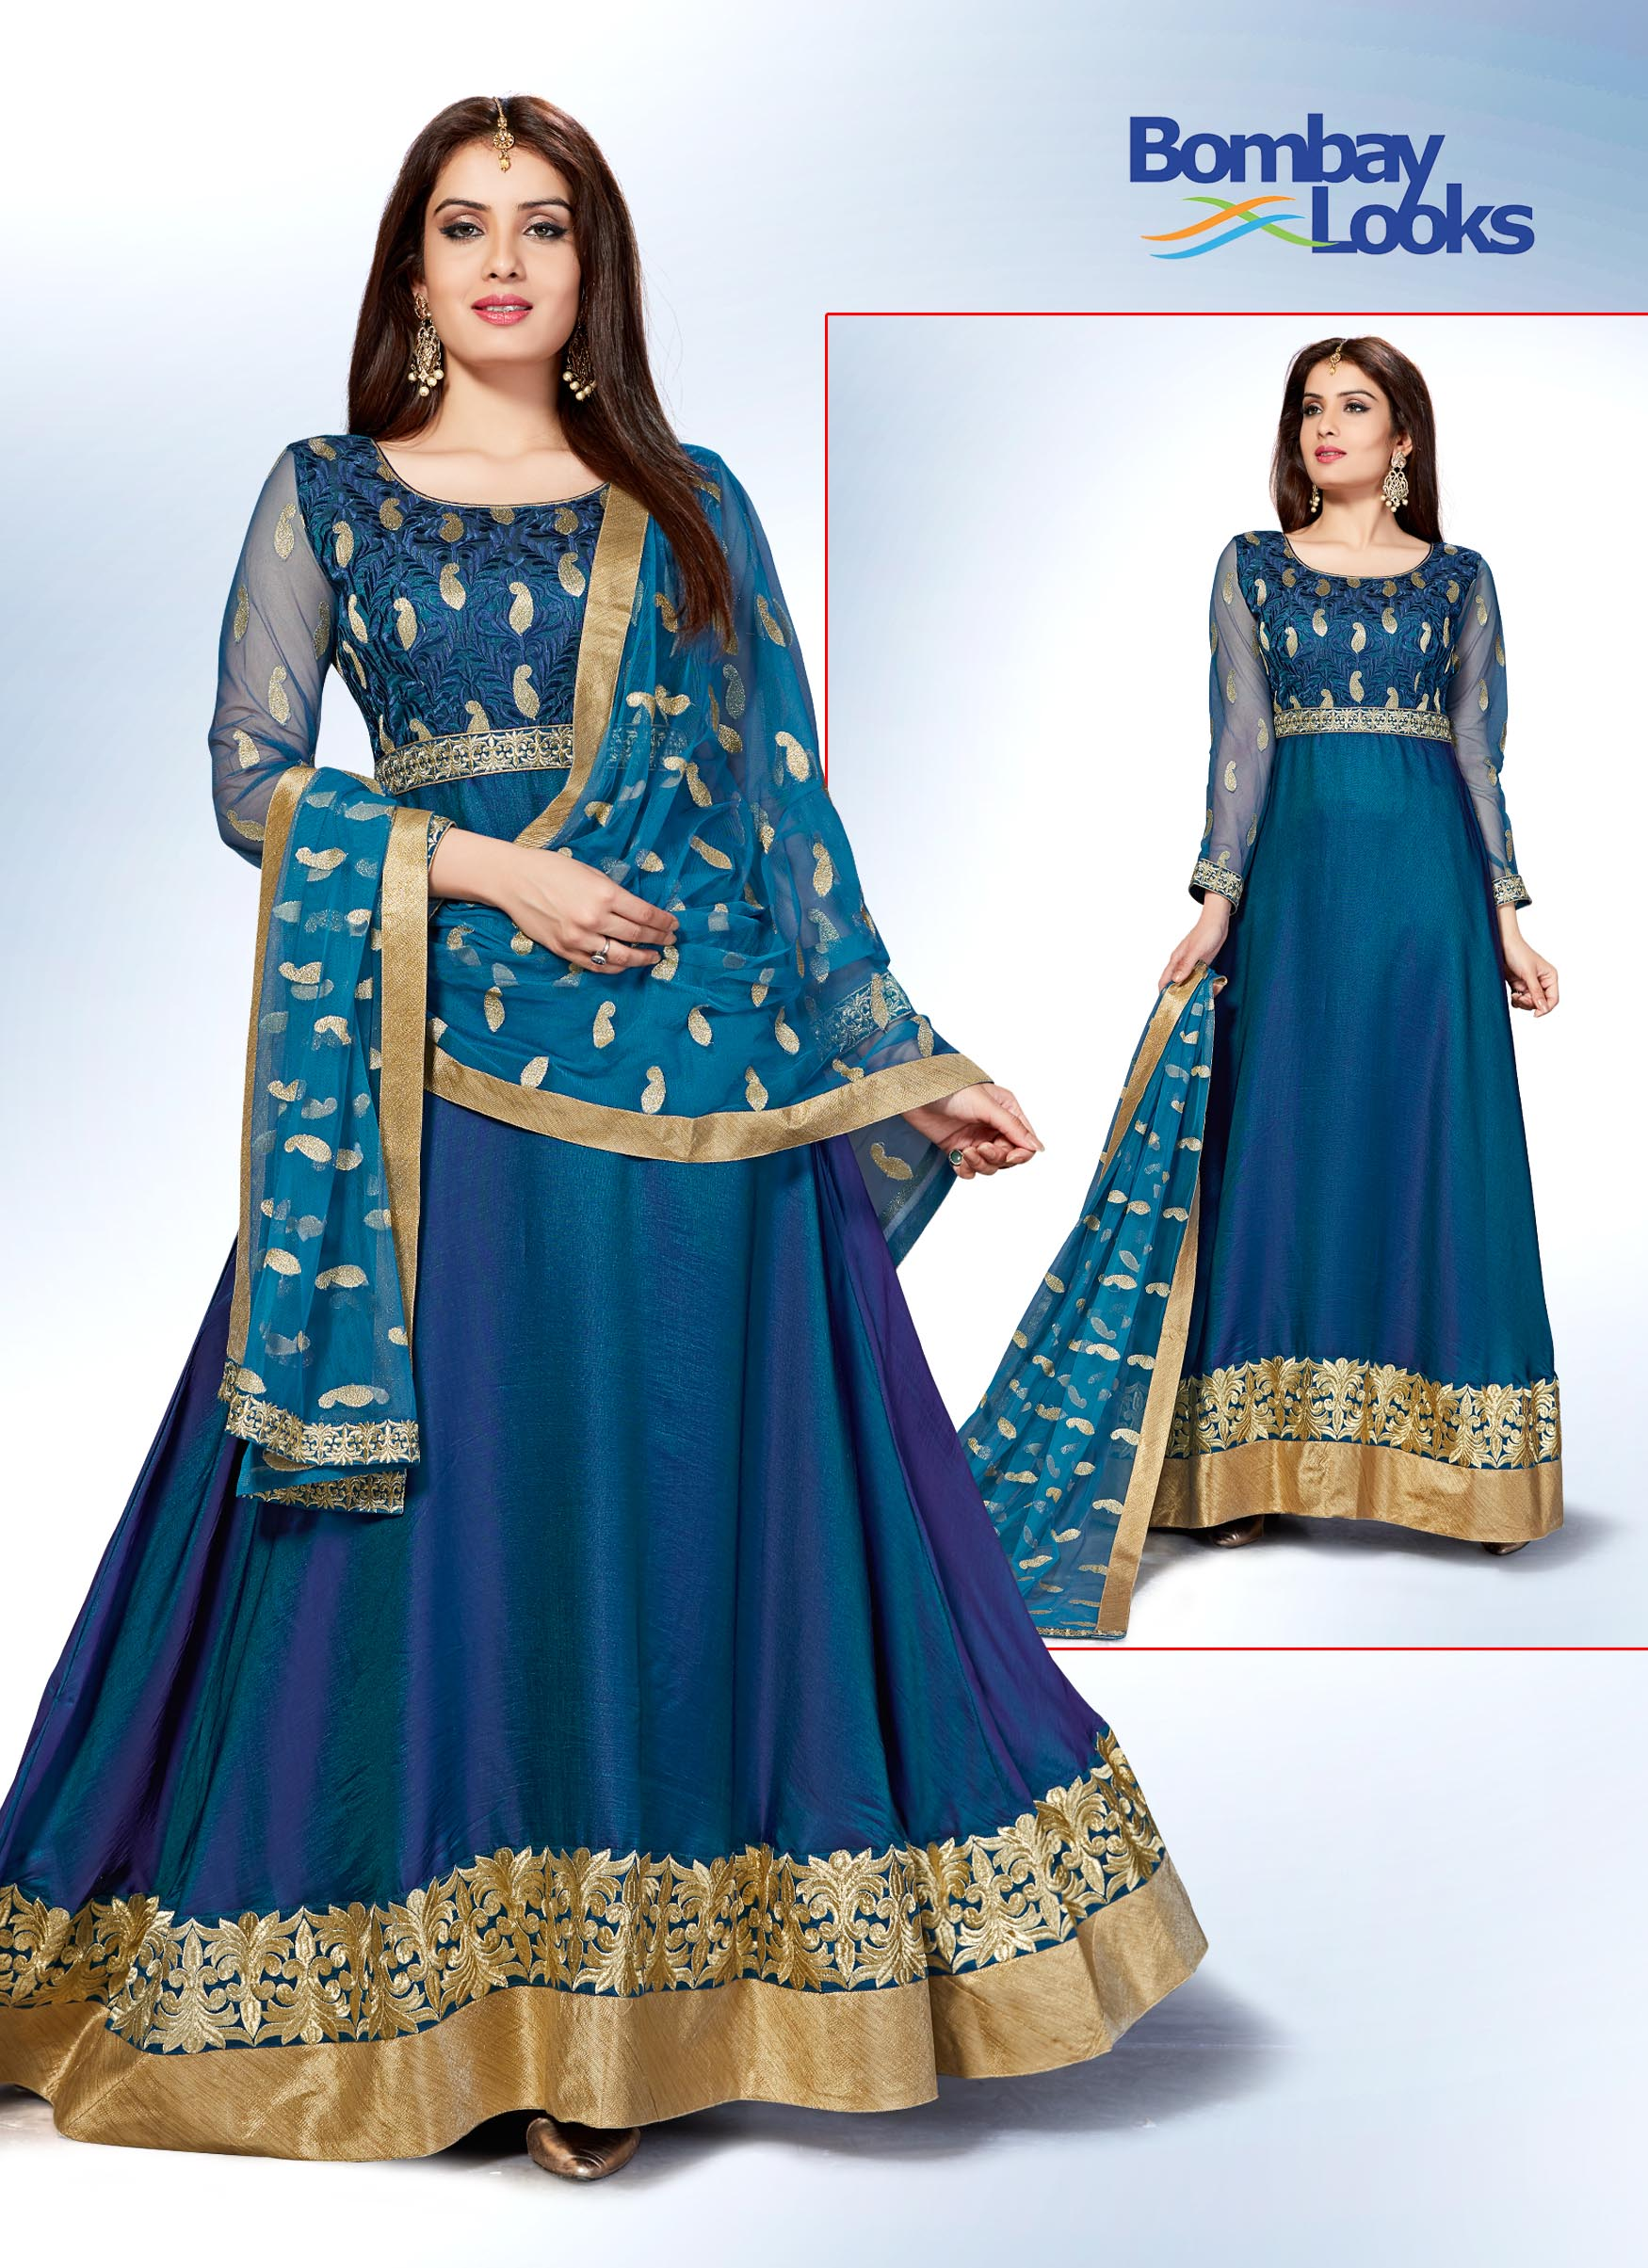 Stunning blue anarkali has full sleeves with gold border and heavy gold embroidery done on the bodice, hem and dupatta